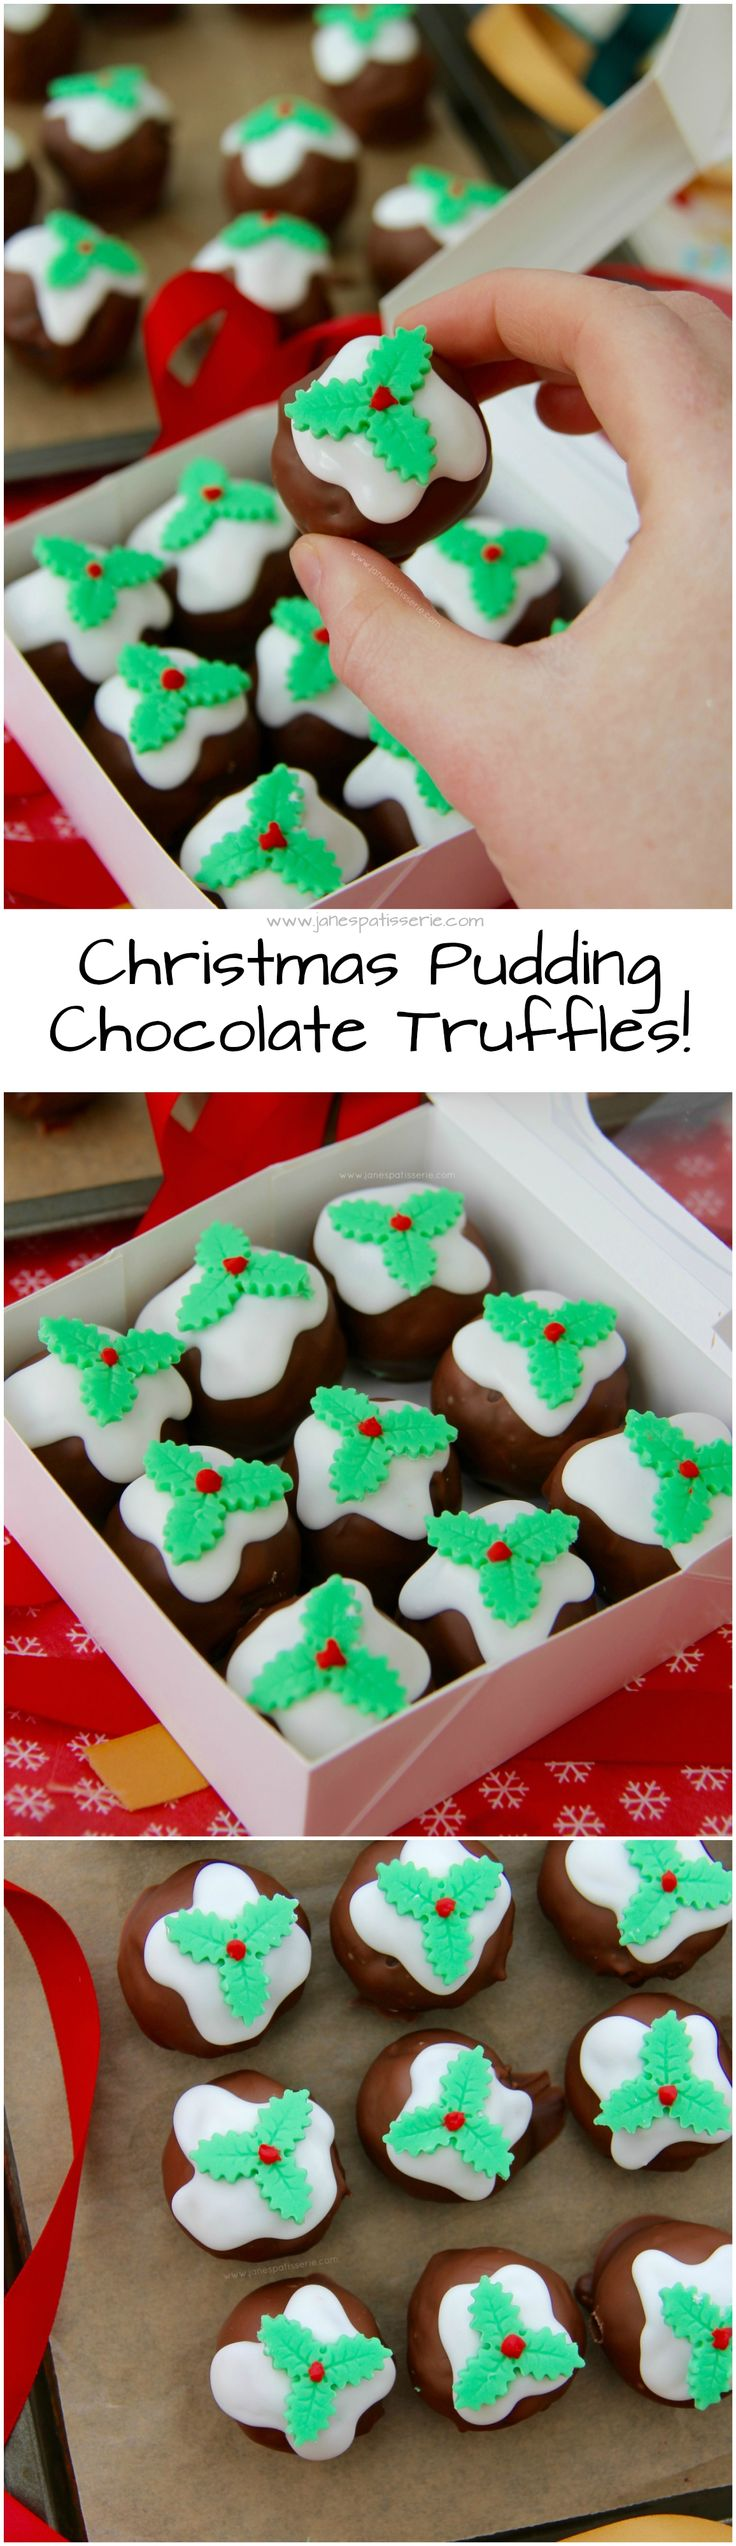 1000 Ideas About Cute Christmas Gifts On Pinterest: cute homemade christmas gifts